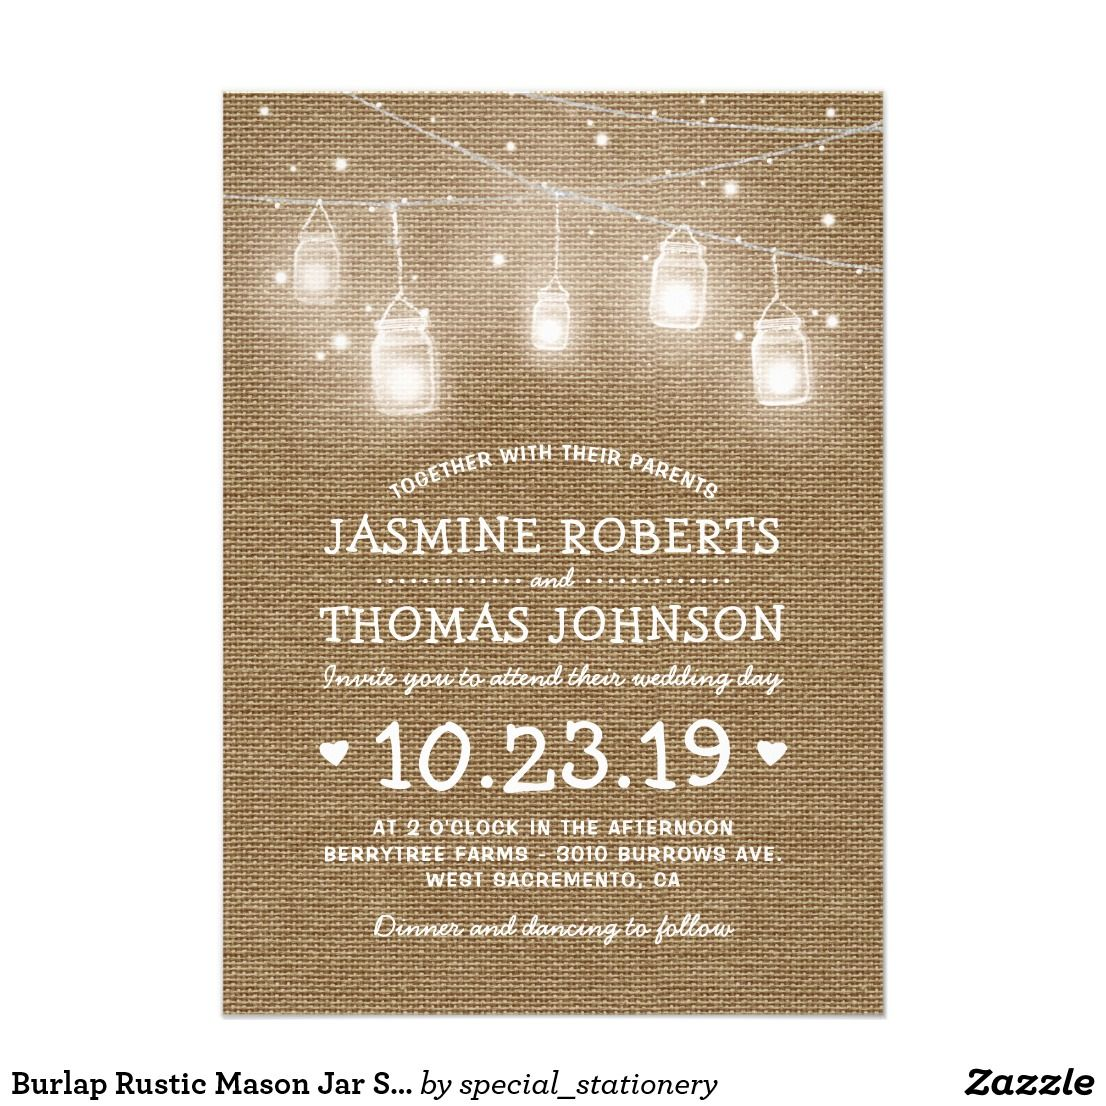 Burlap Rustic Mason Jar String Lights Wedding Card | Rustic mason ...